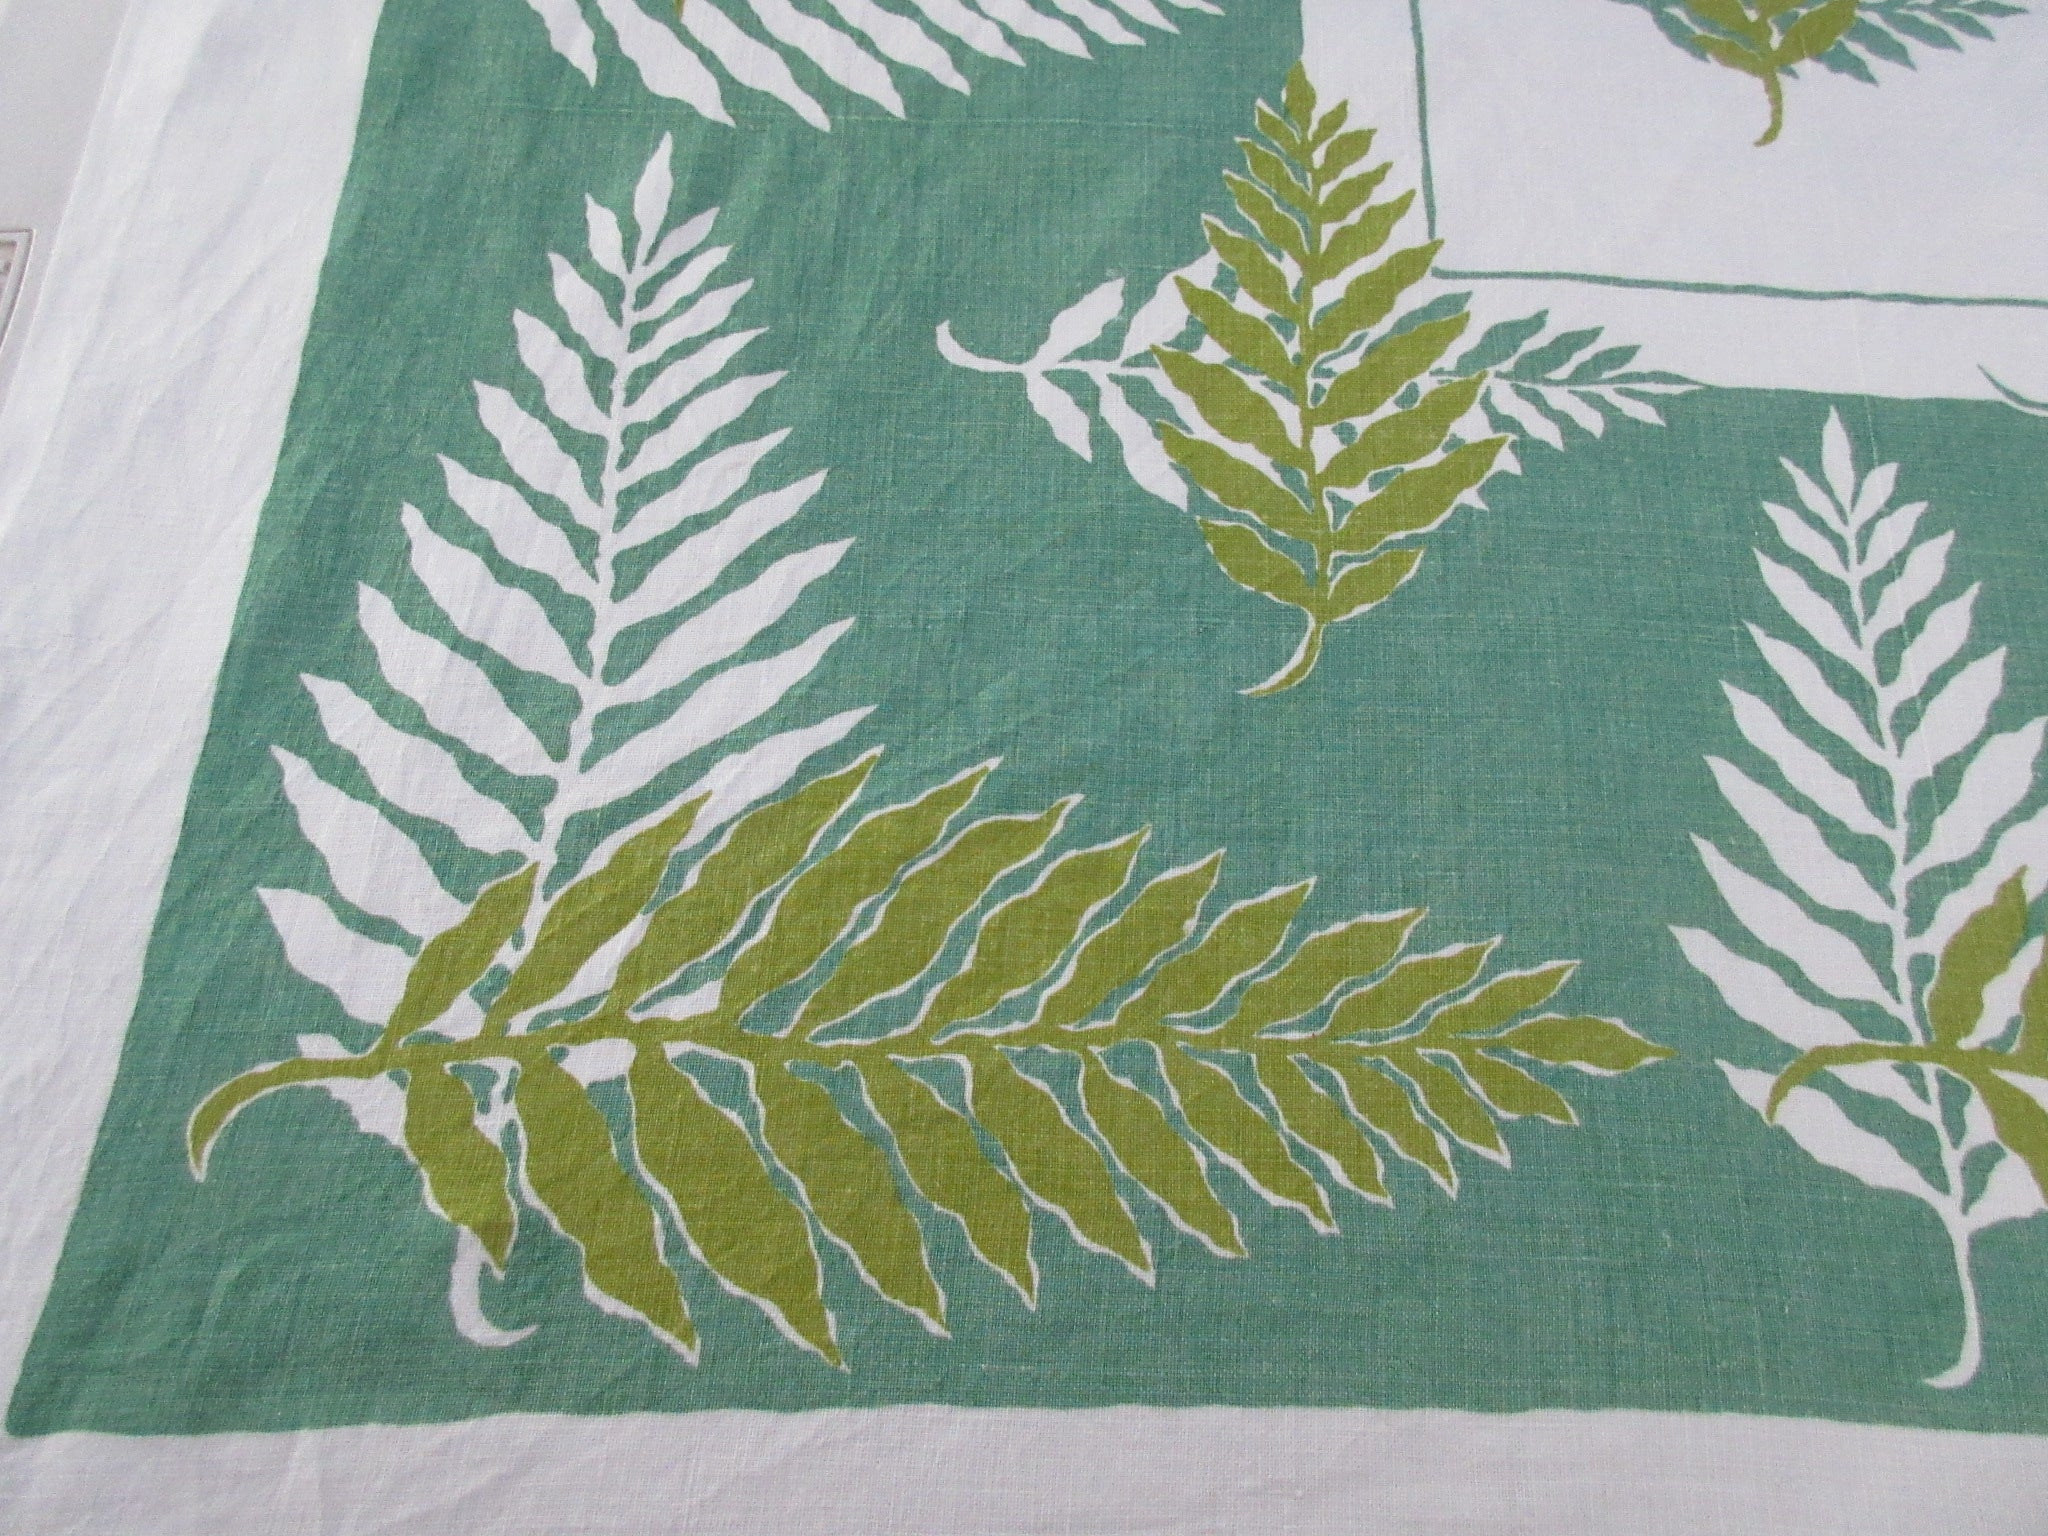 Ferns on Green Linen Novelty Vintage Printed Tablecloth (50 X 49)